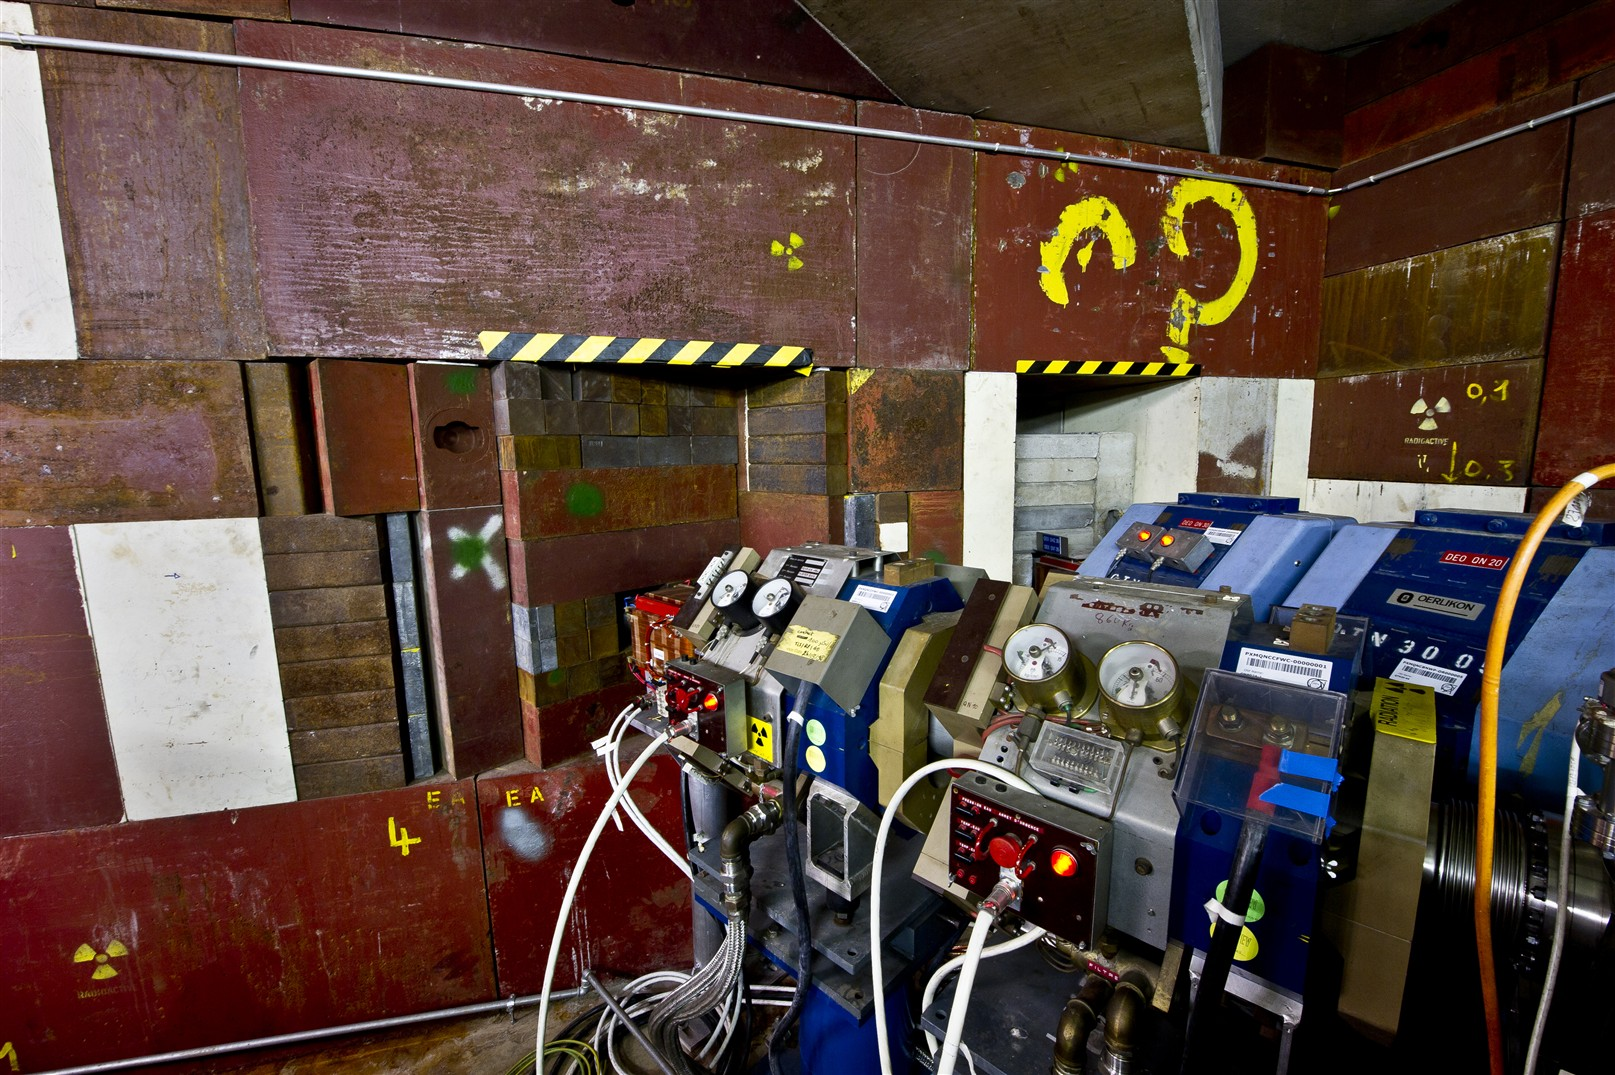 View of the CERN Antiproton Decelerator (AD) and portrait of Prof. Tommy Eriksson, in charge of the AD machine.